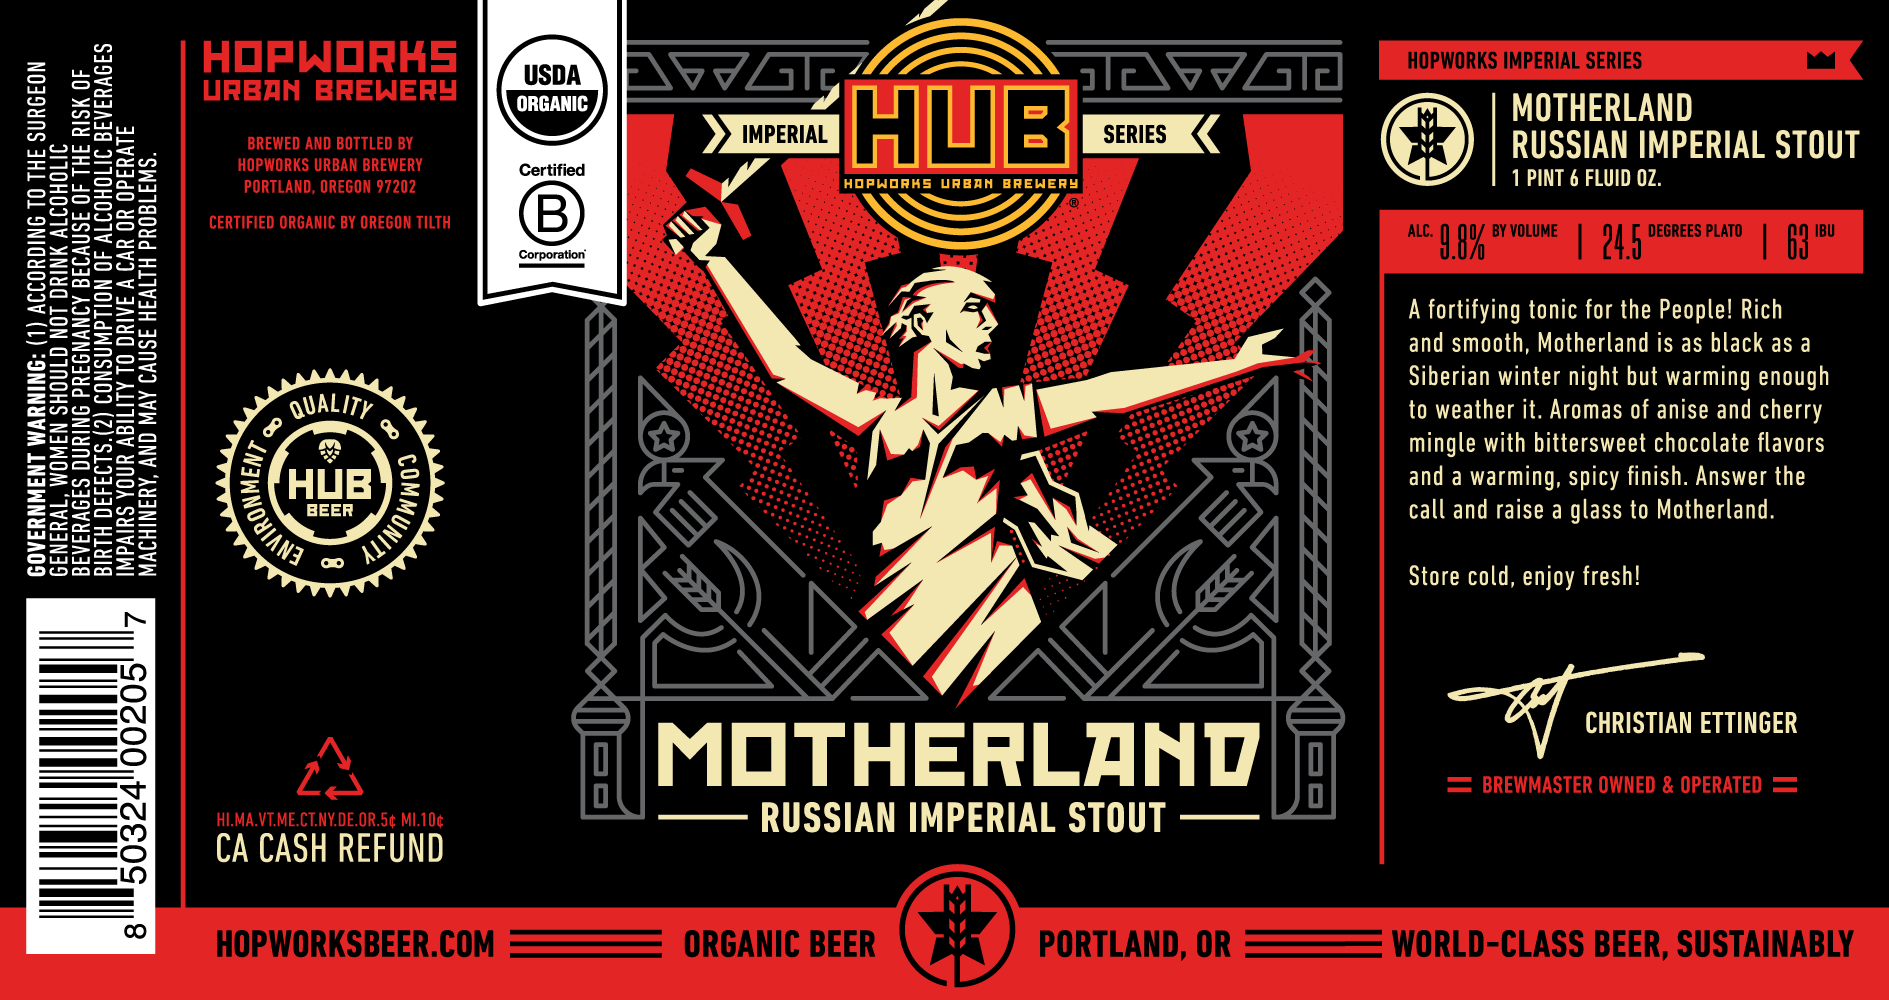 hopworks-urban-brewery-motherland-russian-imperial-stout-label